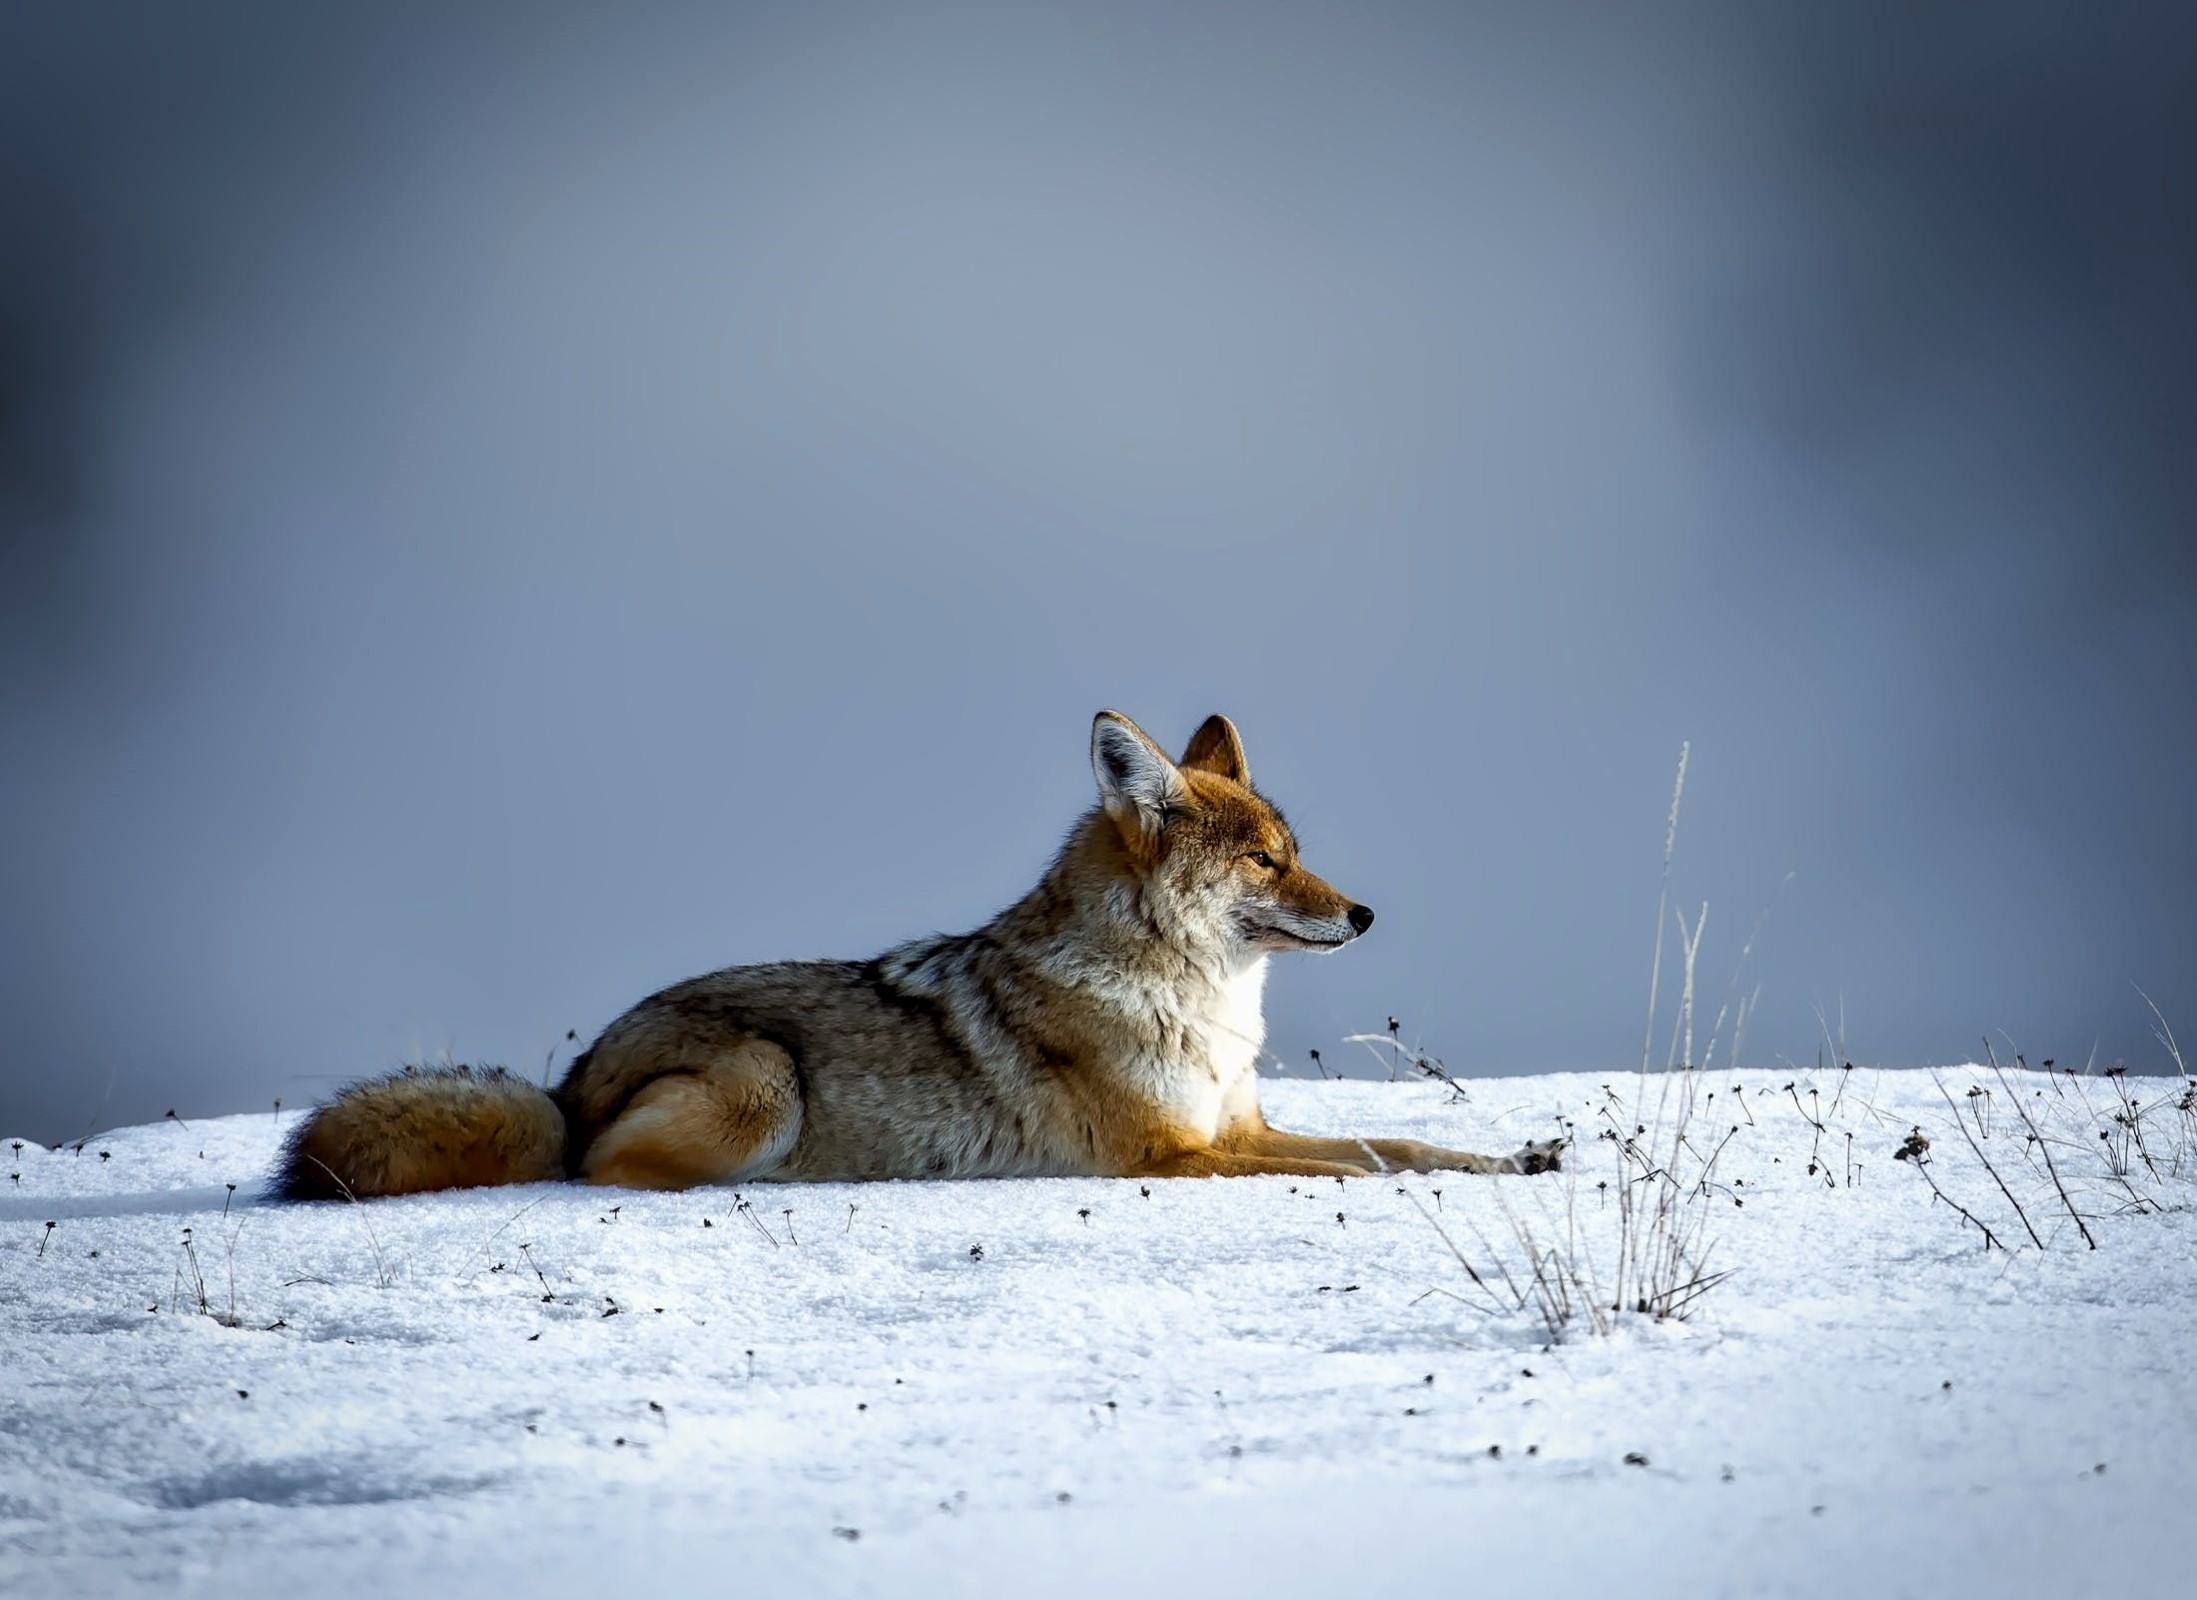 yellowstone national park snow fox animal